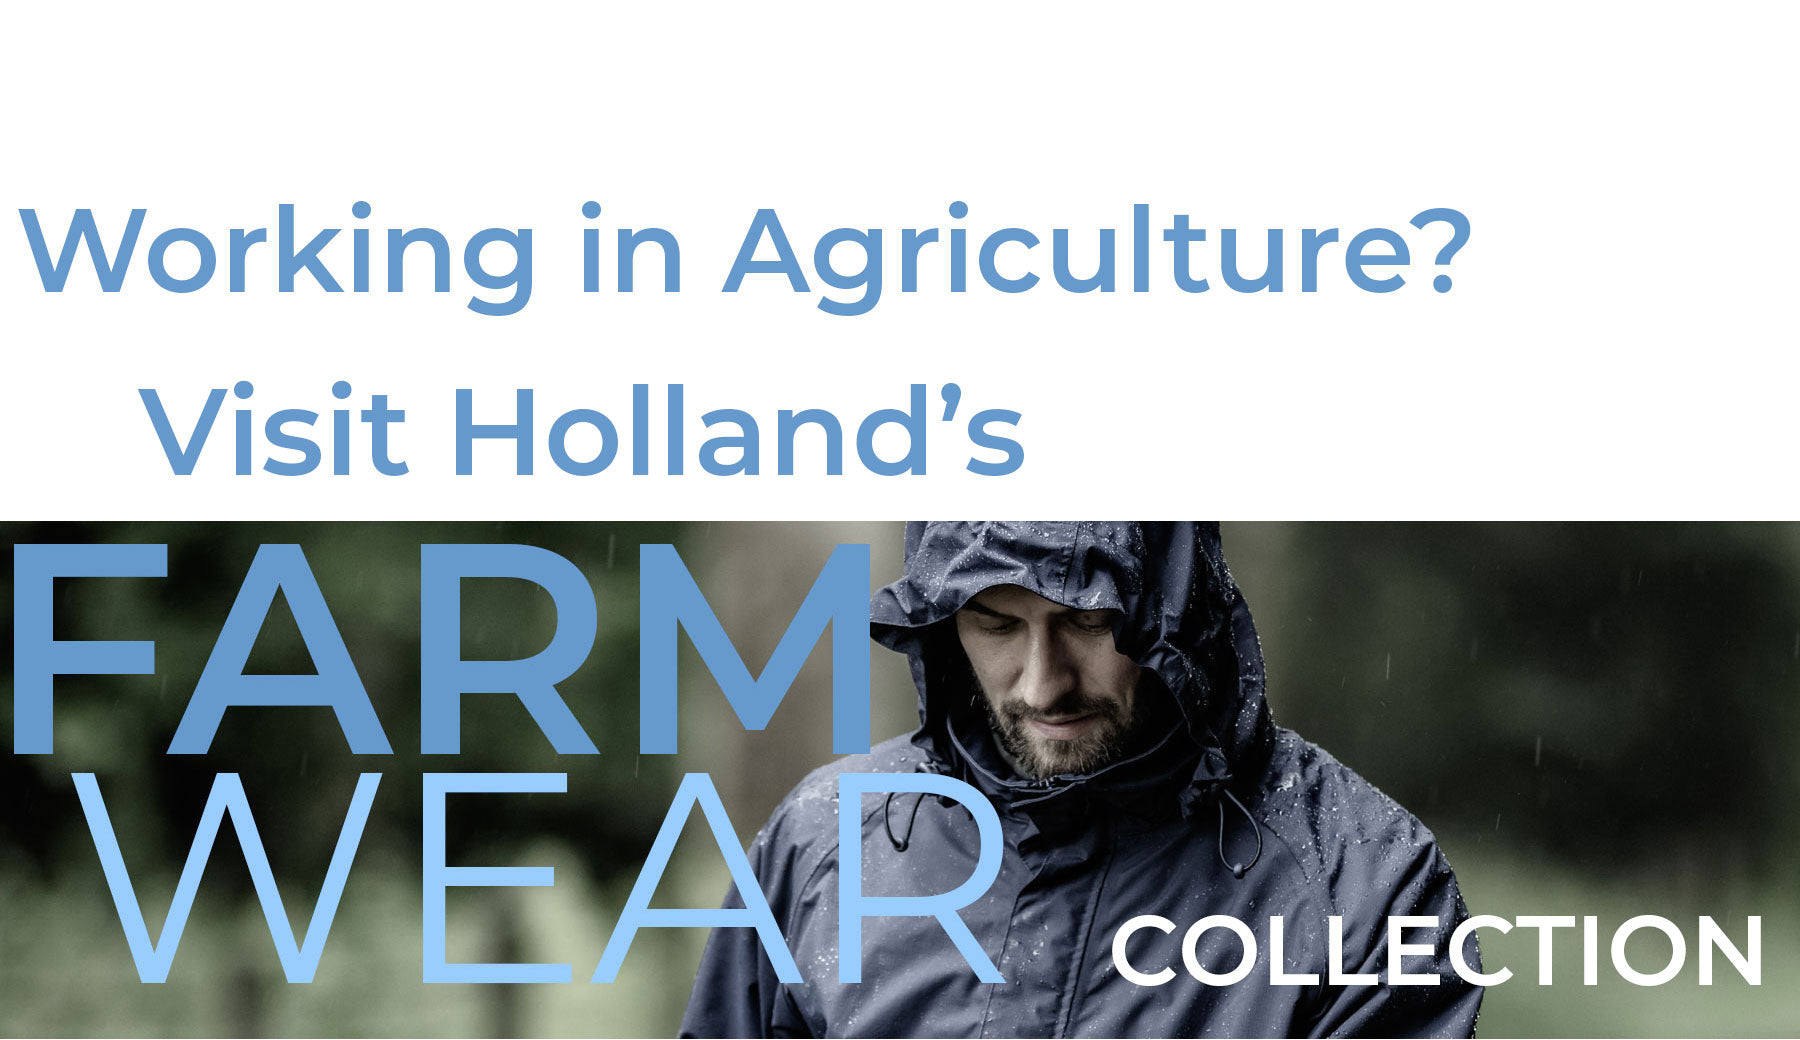 Working in Agriculture - Visit the Holland's Country Clothing Farm Wear Collection